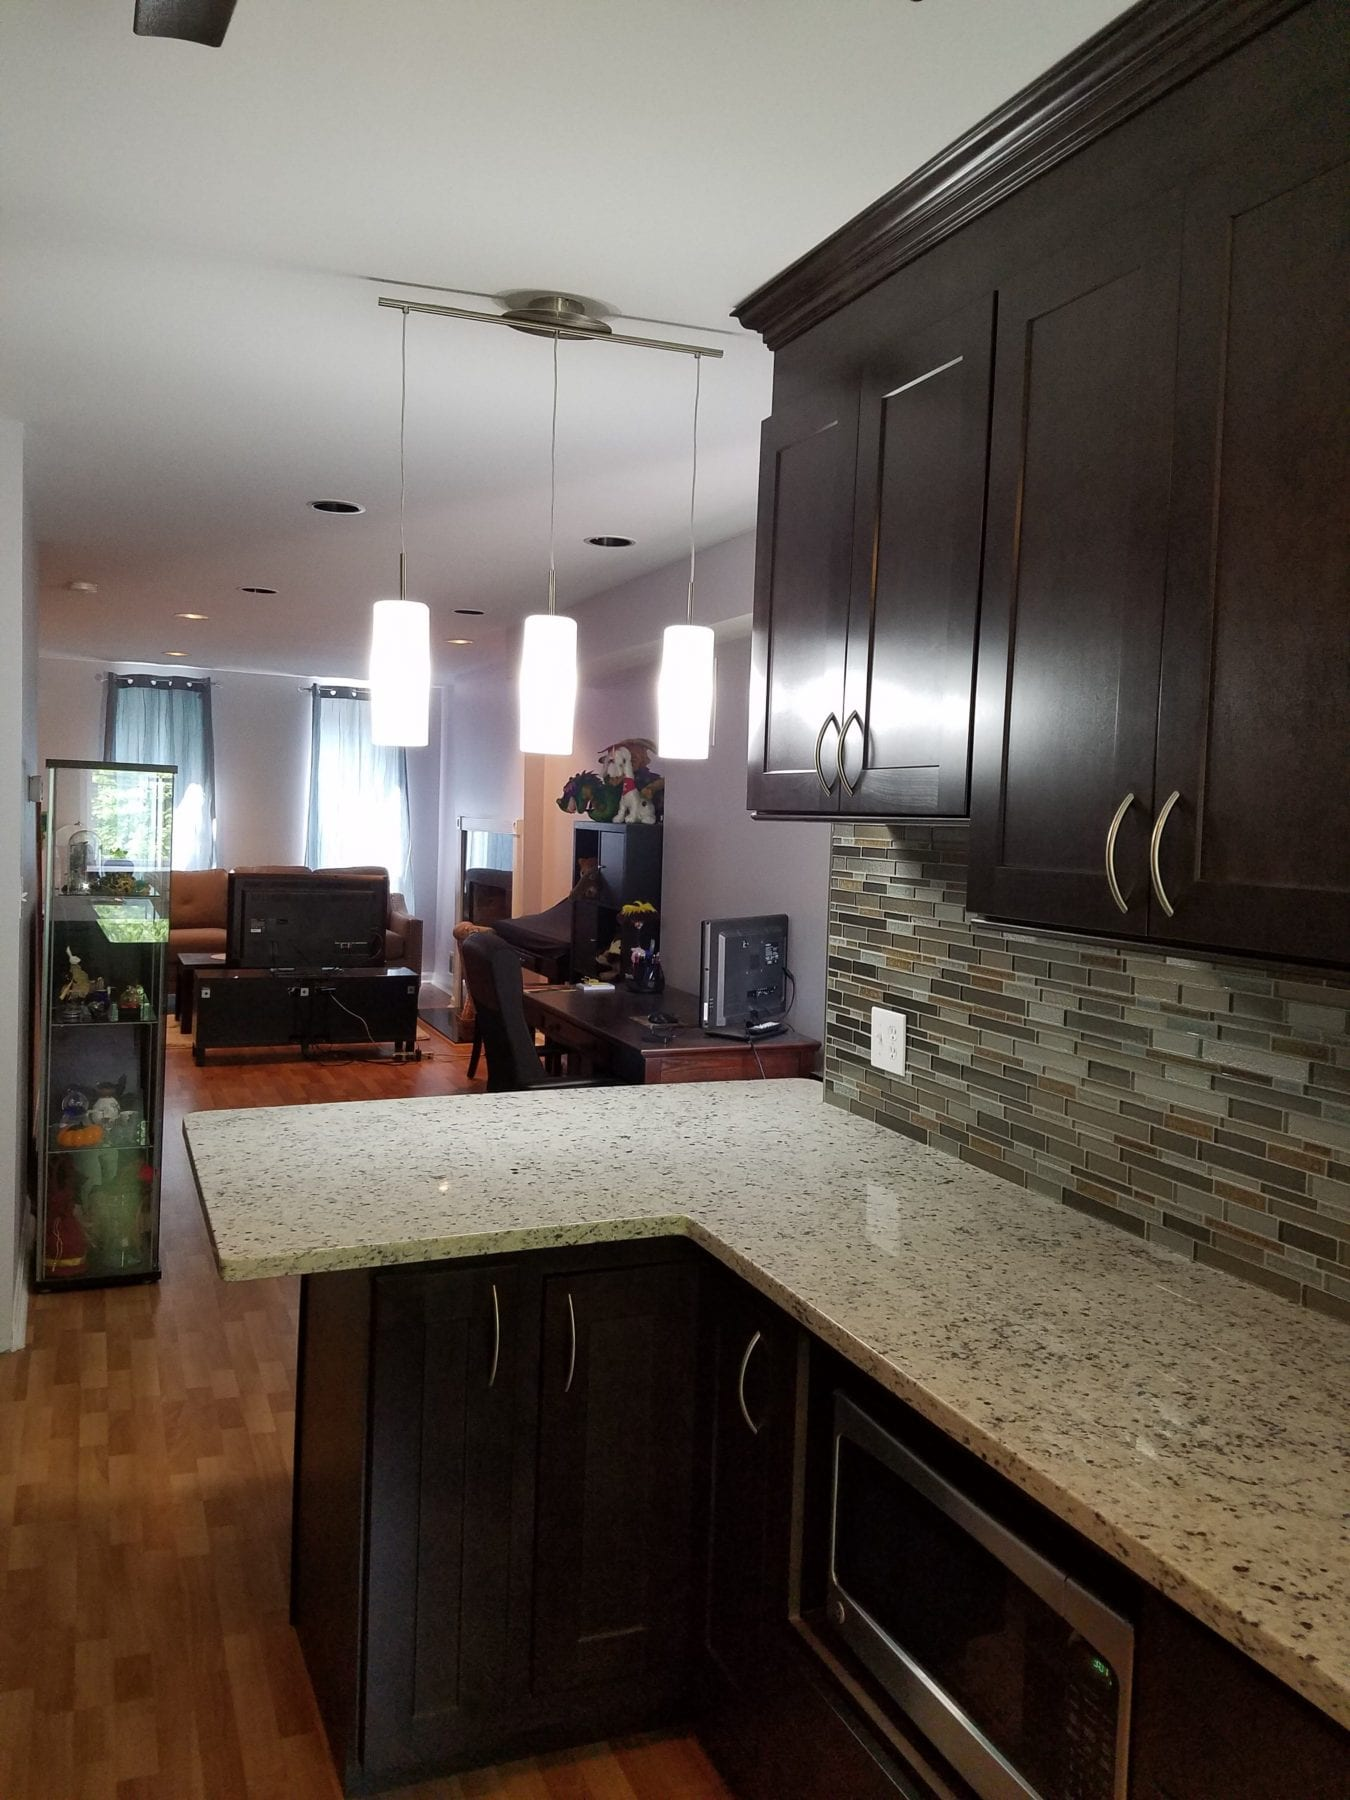 Hampden MD Kitchen Remodeling with small island and overhand 1 e1489158261571